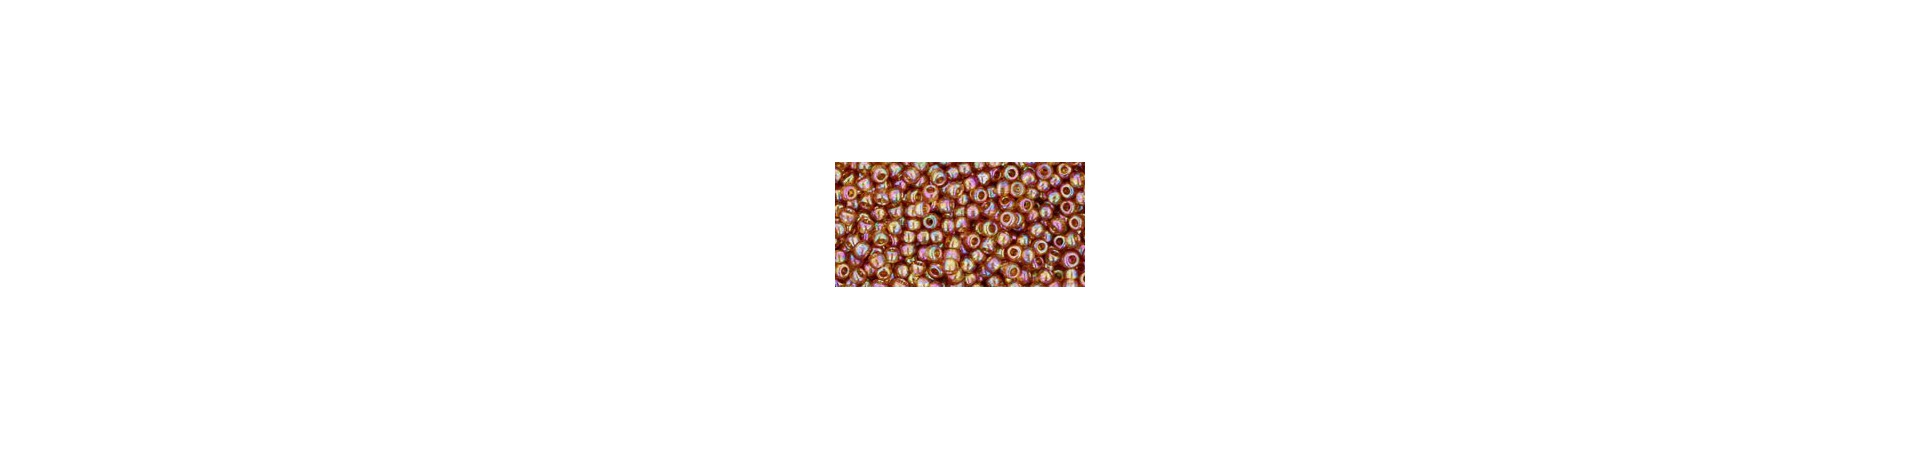 Round seed beads 11/0 (2.2mm)